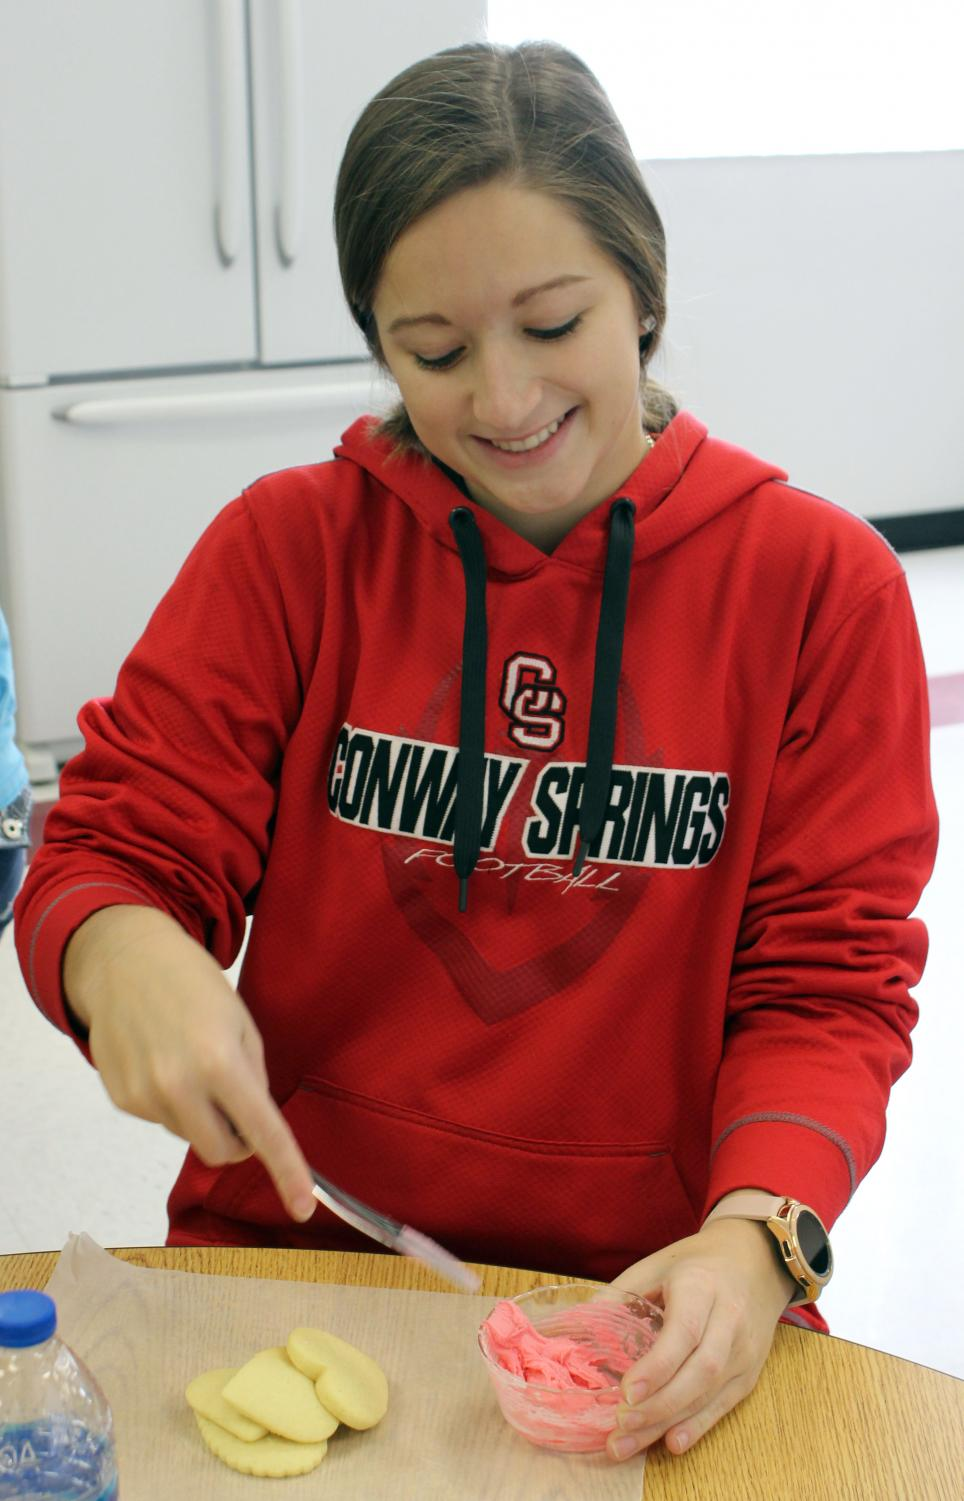 For the Valentine's giveaway, senior Lesie Mies decorates heart-shaped cookies. This giveaway was hosted by the FCCLA group during FCCLA week.